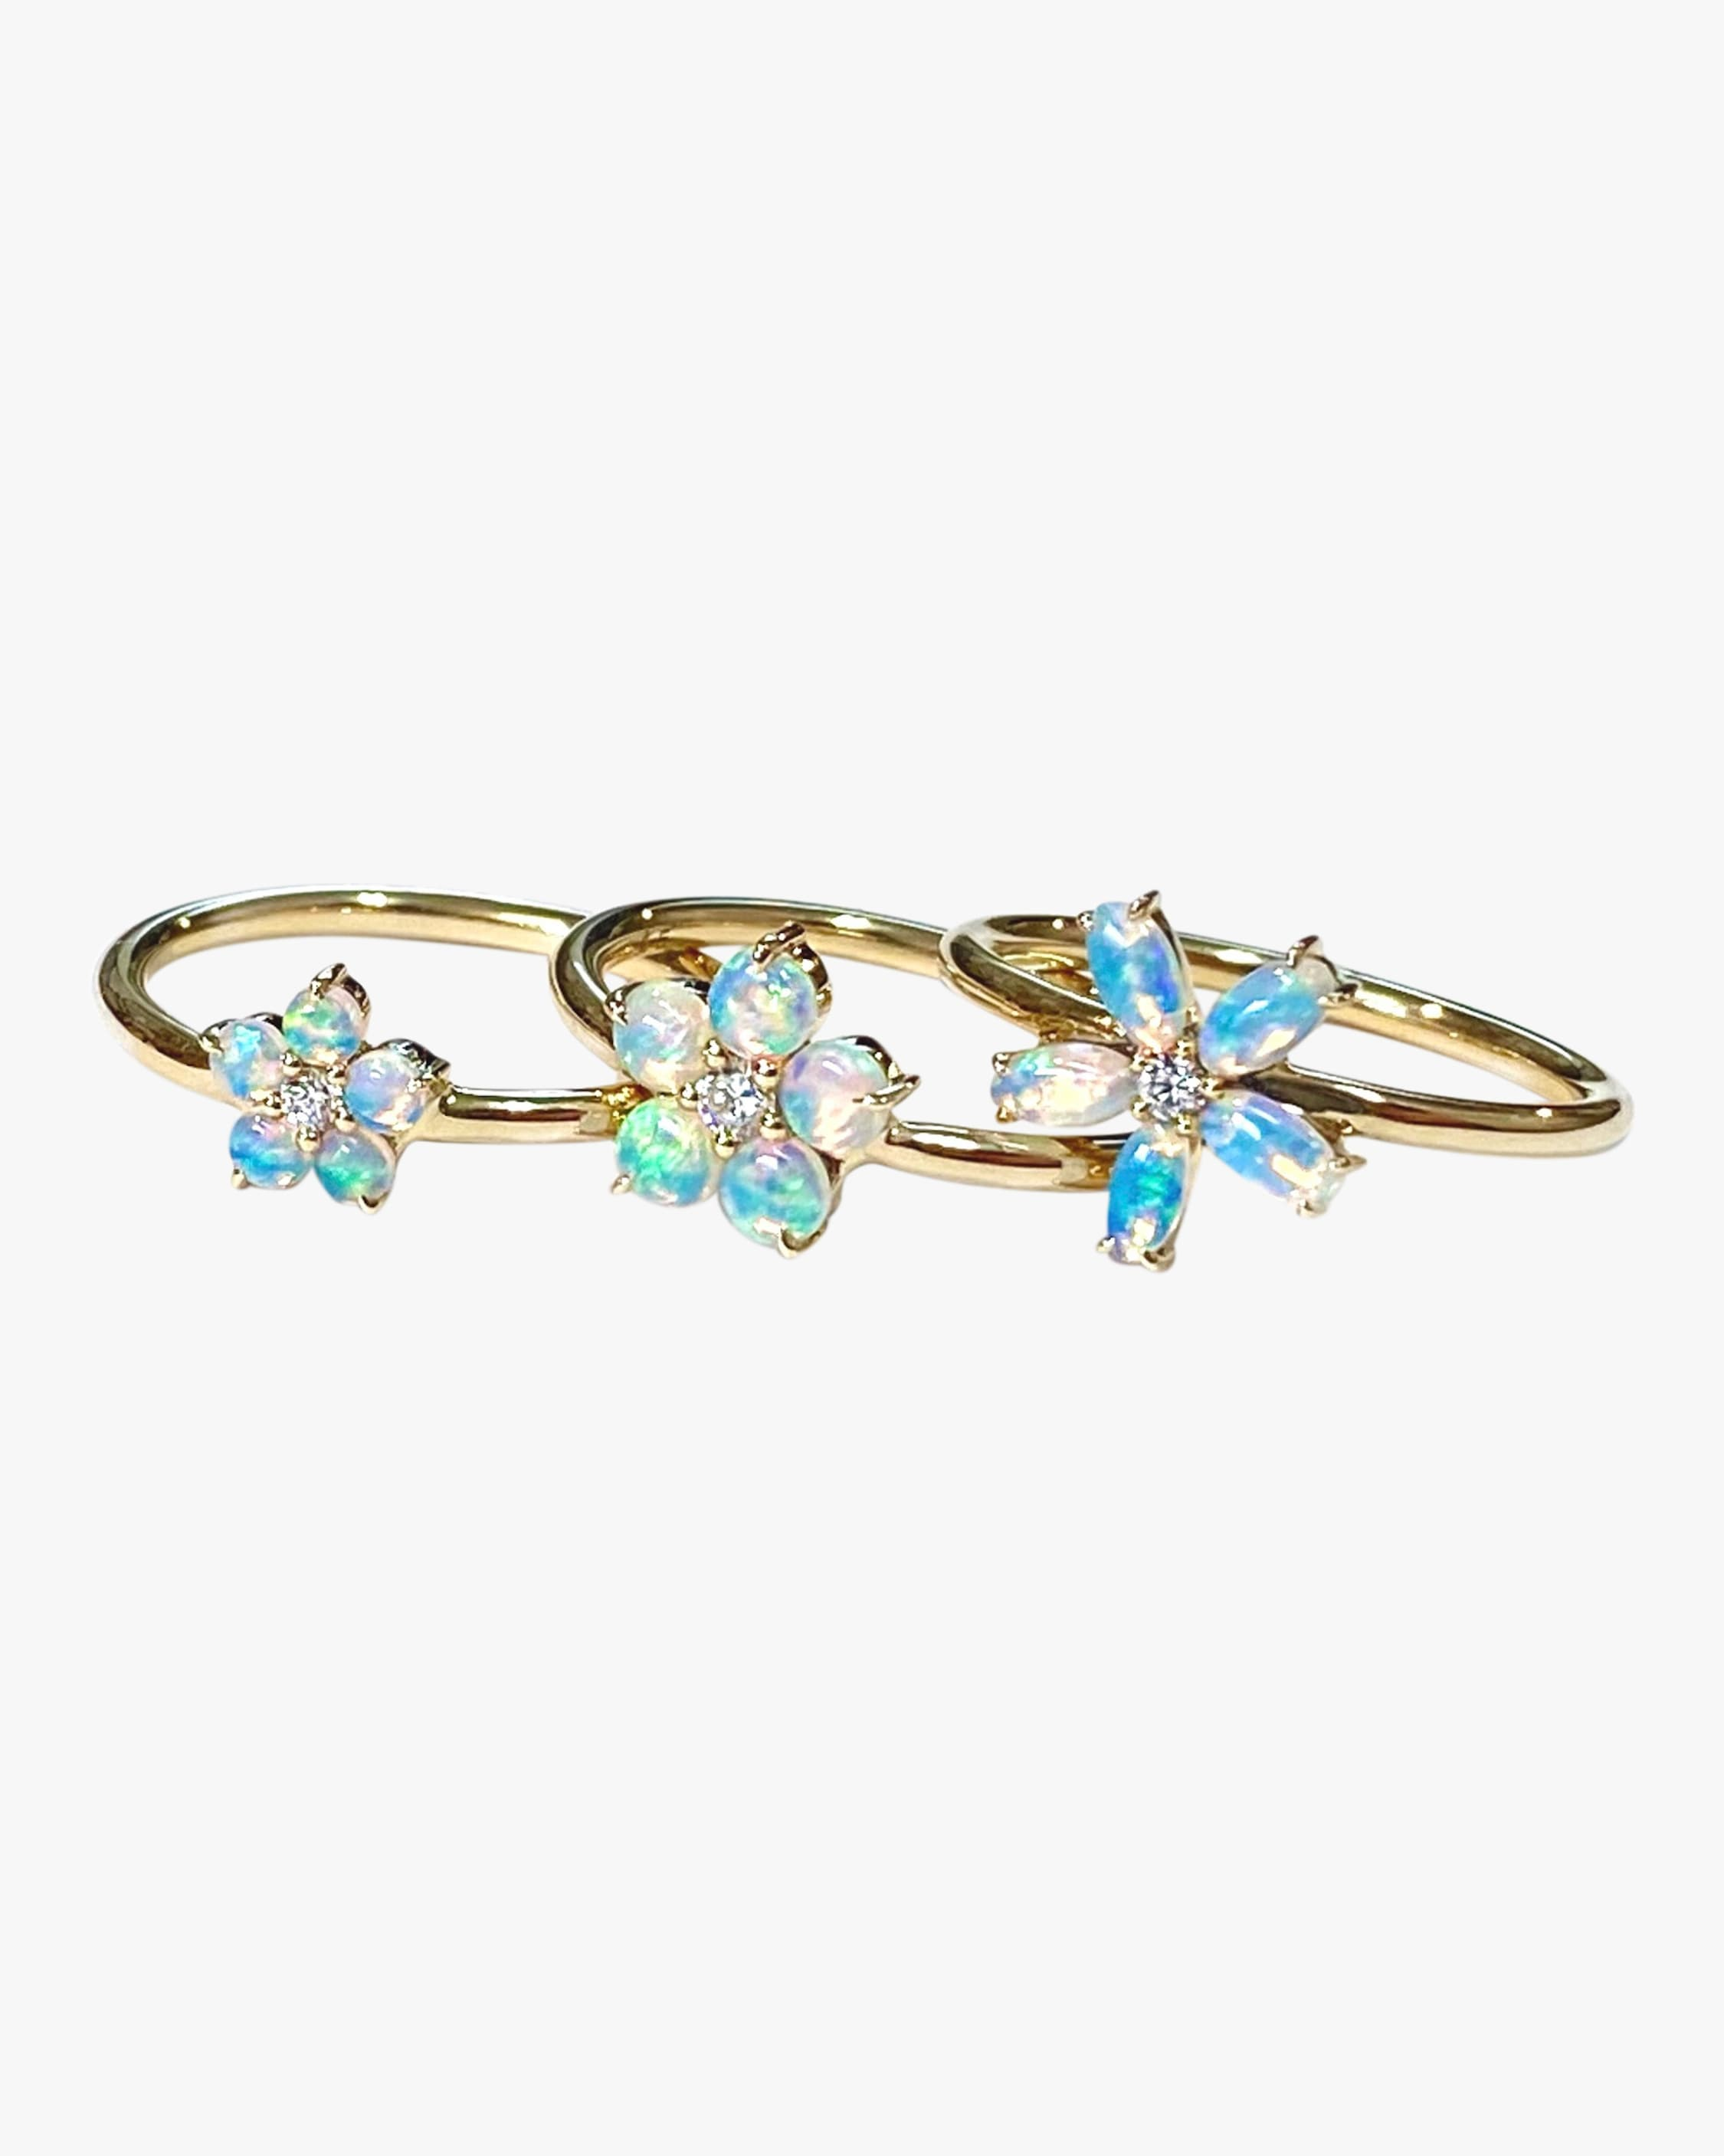 Jane Taylor Rings SMALL OPAL & DIAMOND FLOWER RING